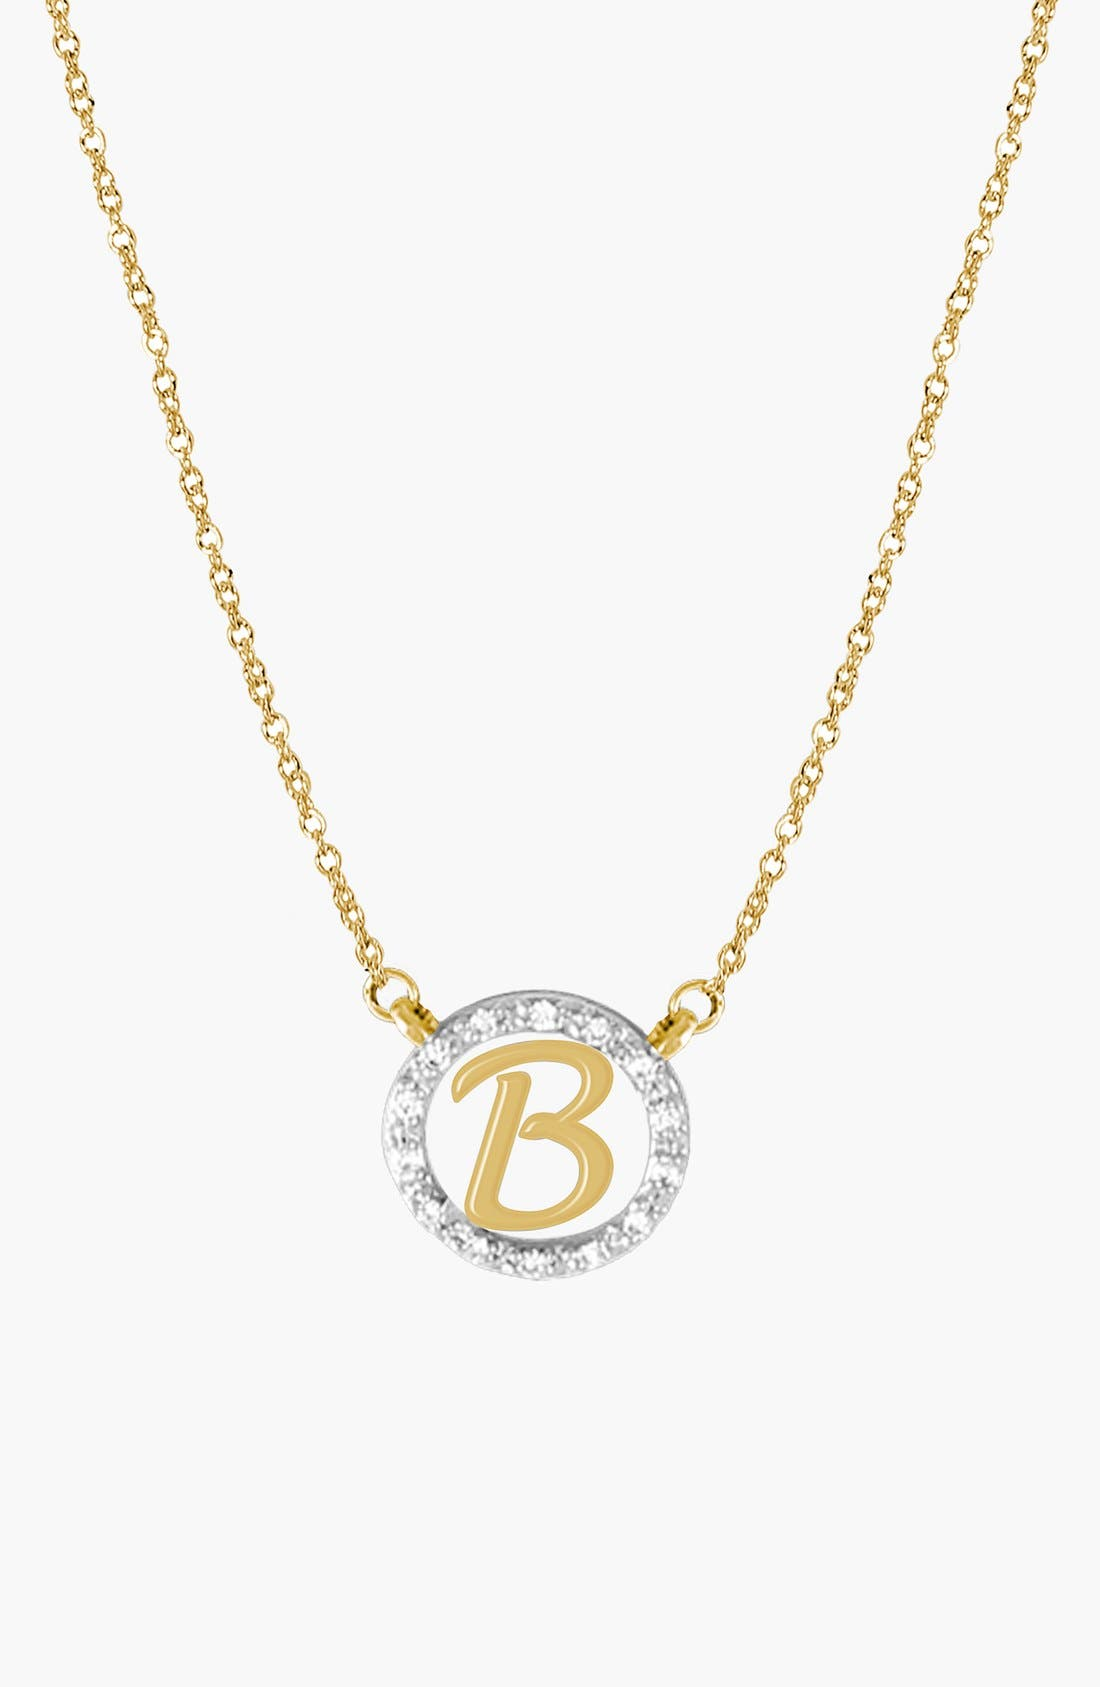 Jane Basch Designs Diamond Pavé Initial Pendant Necklace